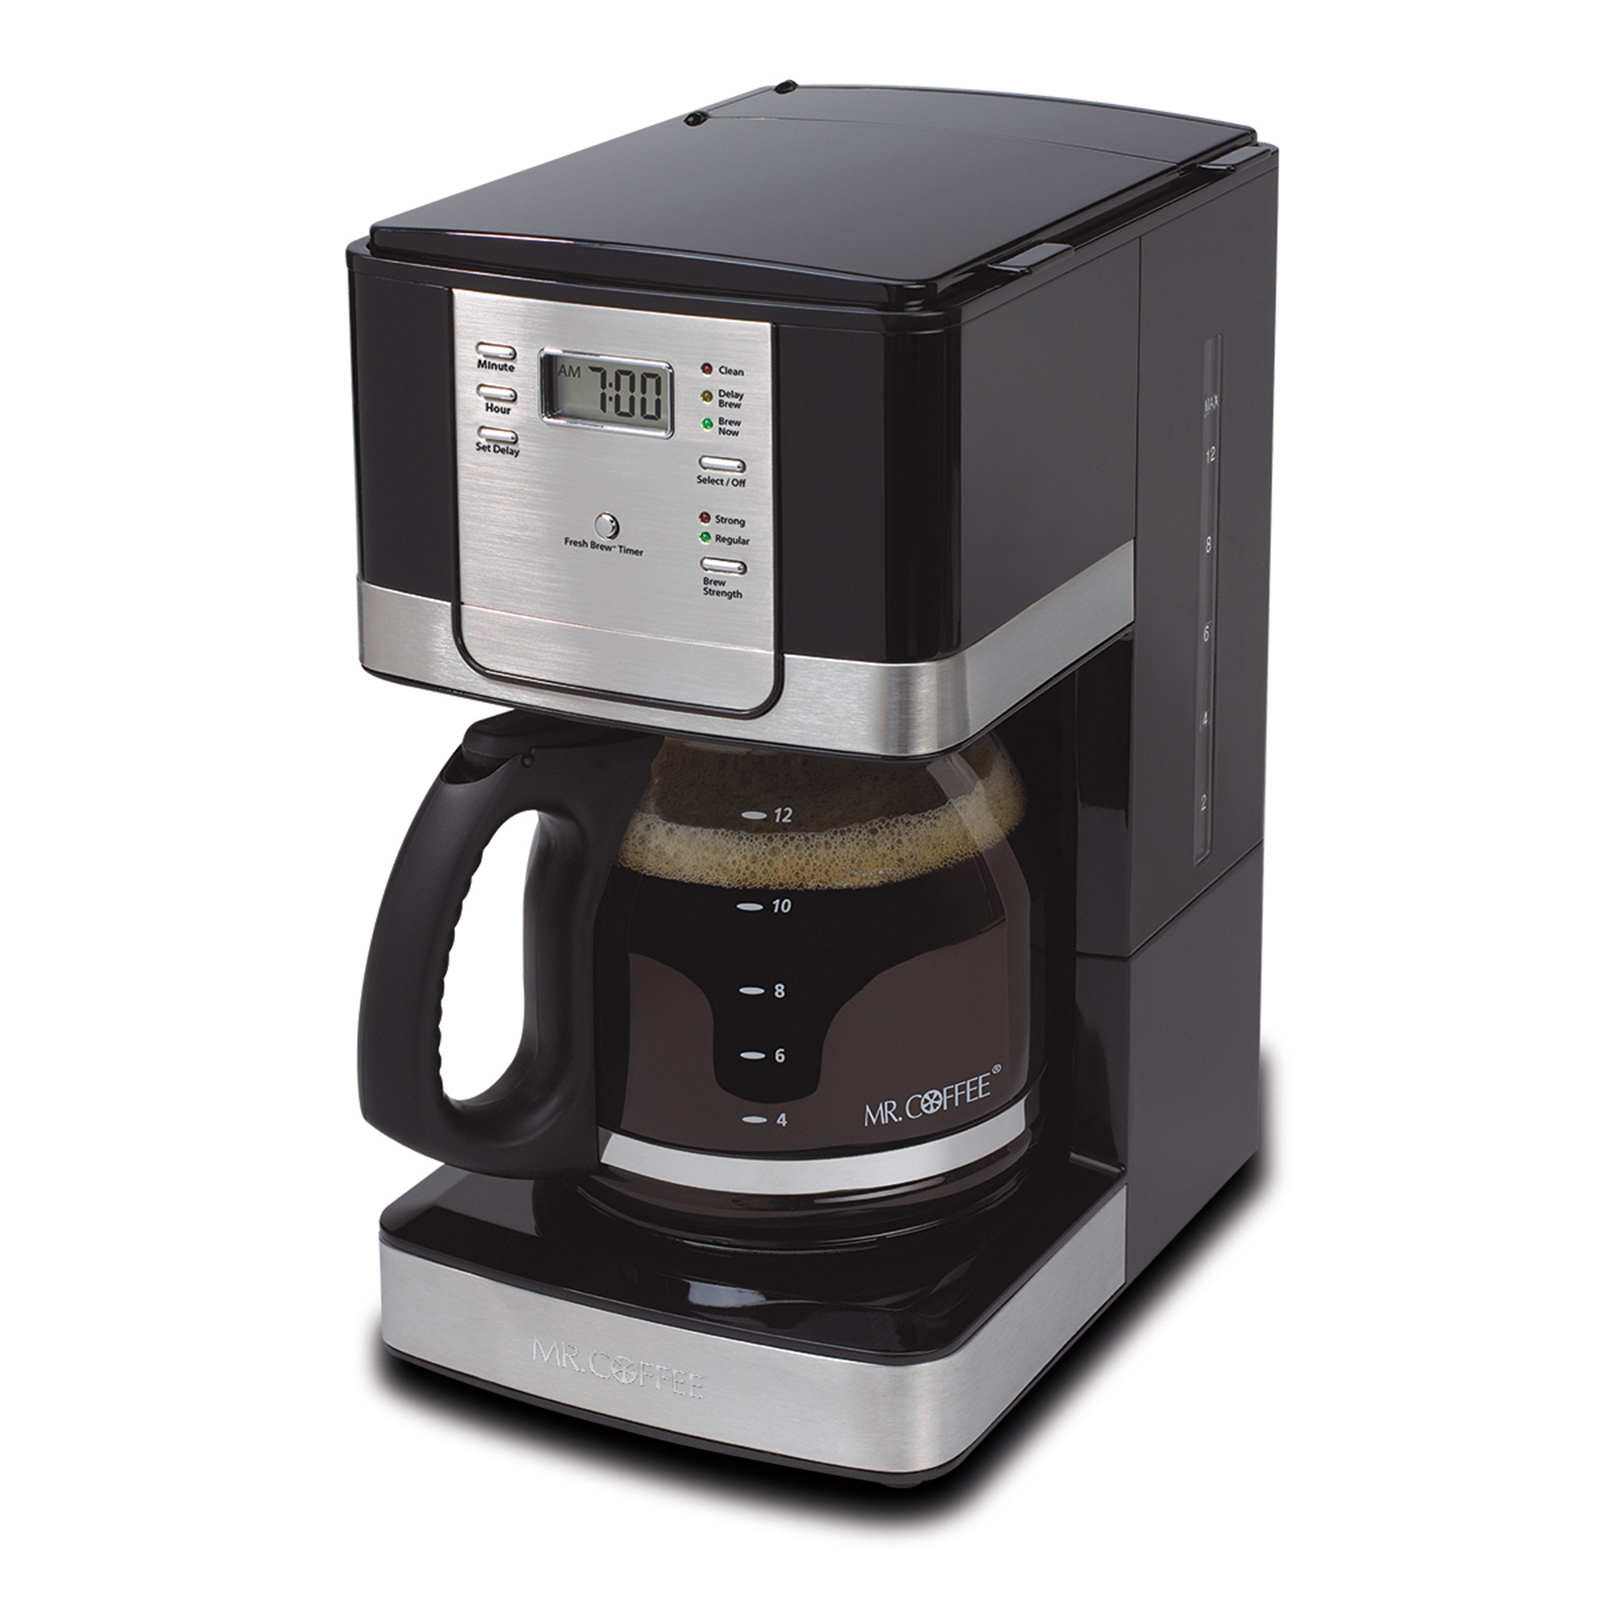 Mr. Coffee 12-Cup Programmable Coffee Maker Stainless Steel/Black - JWX27-A